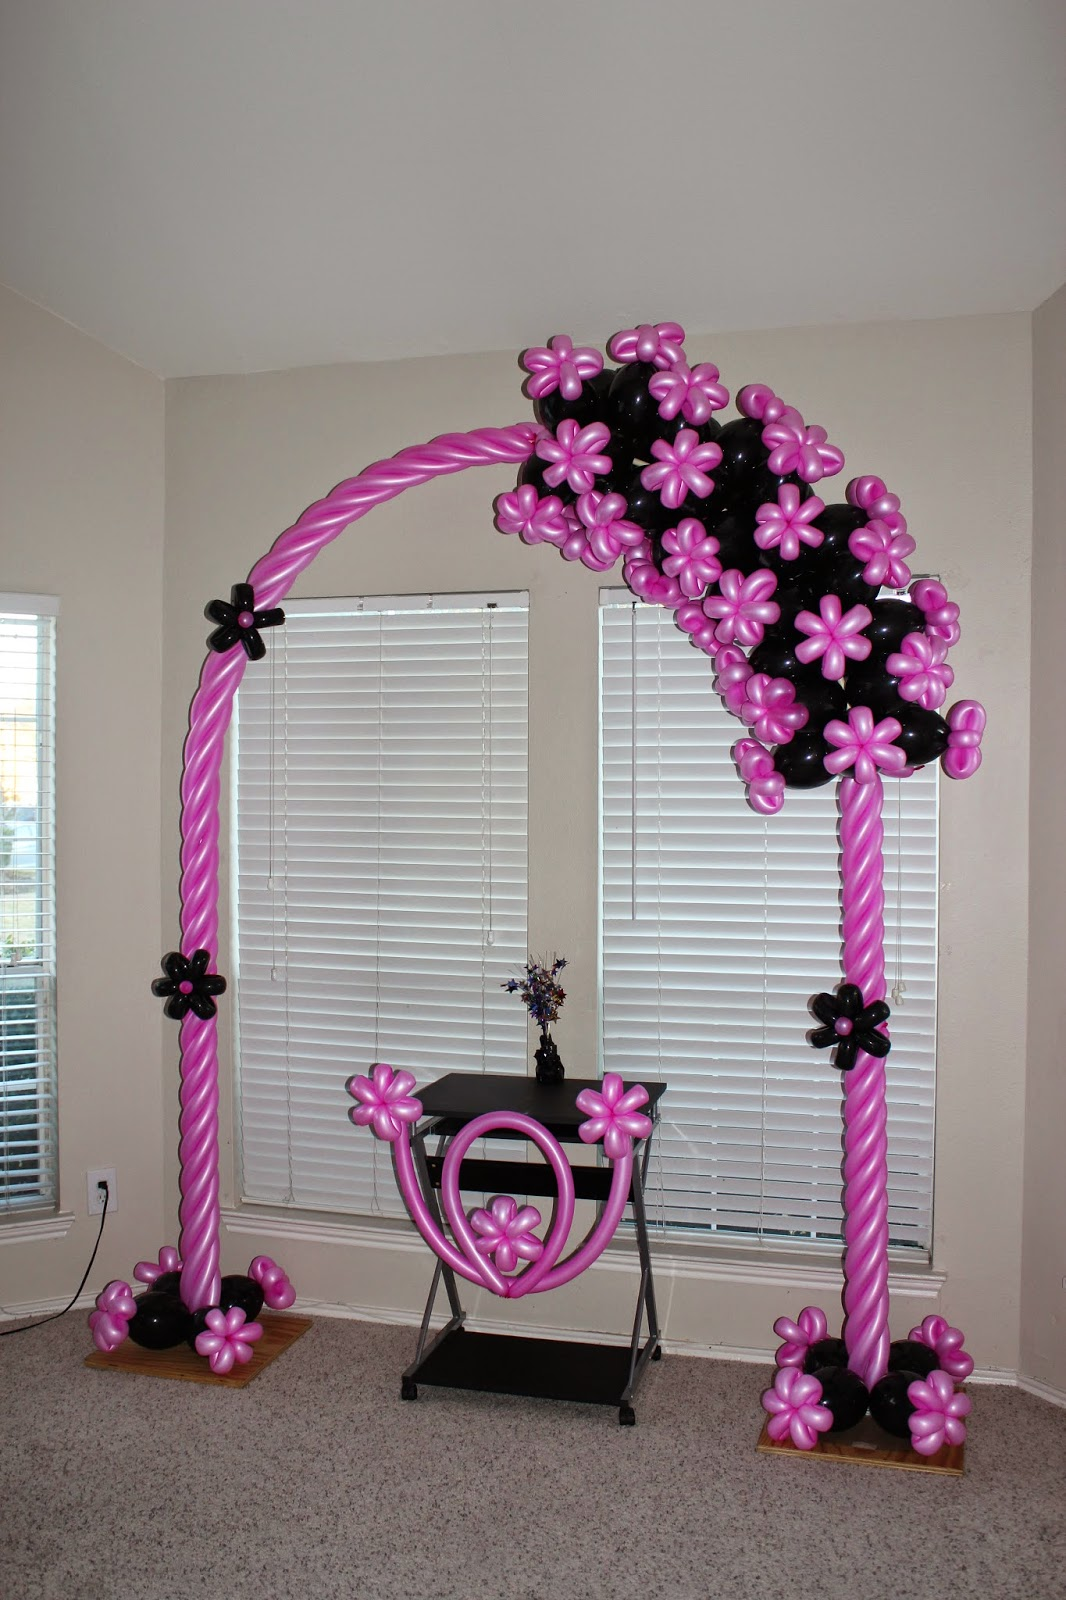 Santo diamond balloon design pink black balloon arch for Arch balloons decoration